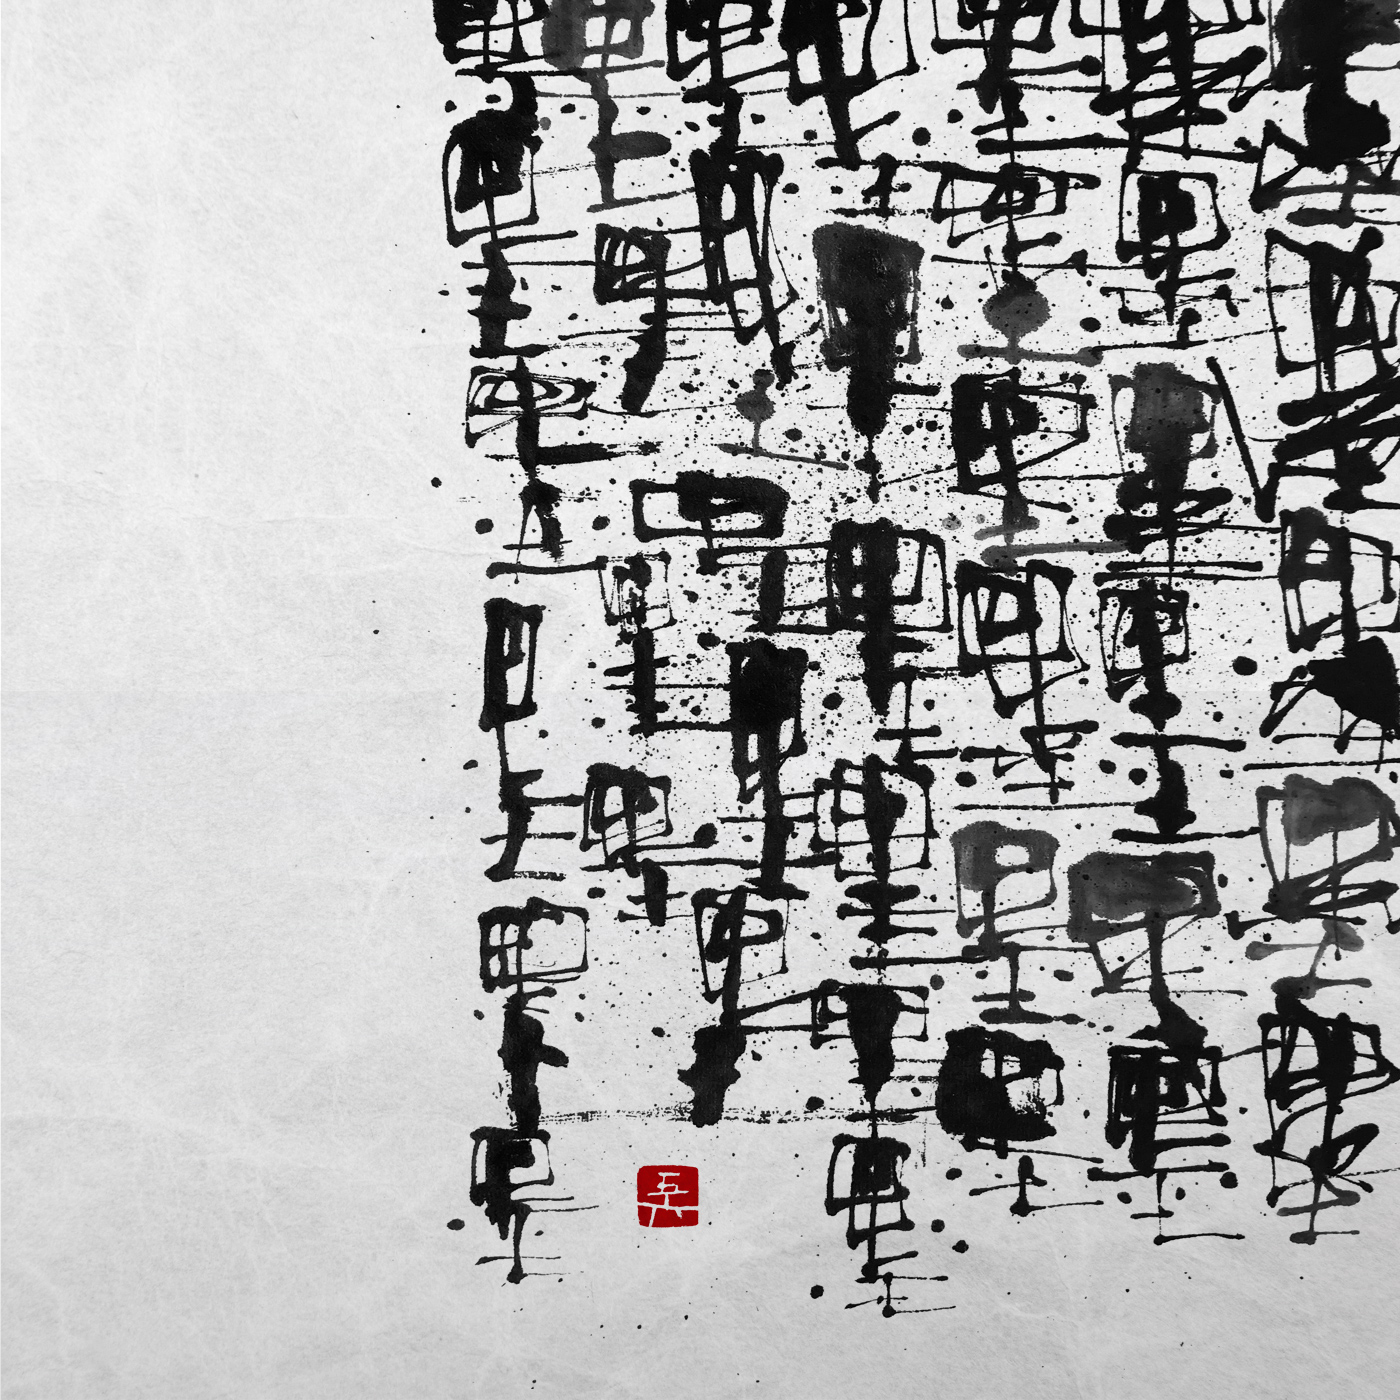 墨 black inc 書道作品 japaneseart japanese calligraphy 書家 田川悟郎 Goroh Tagawa